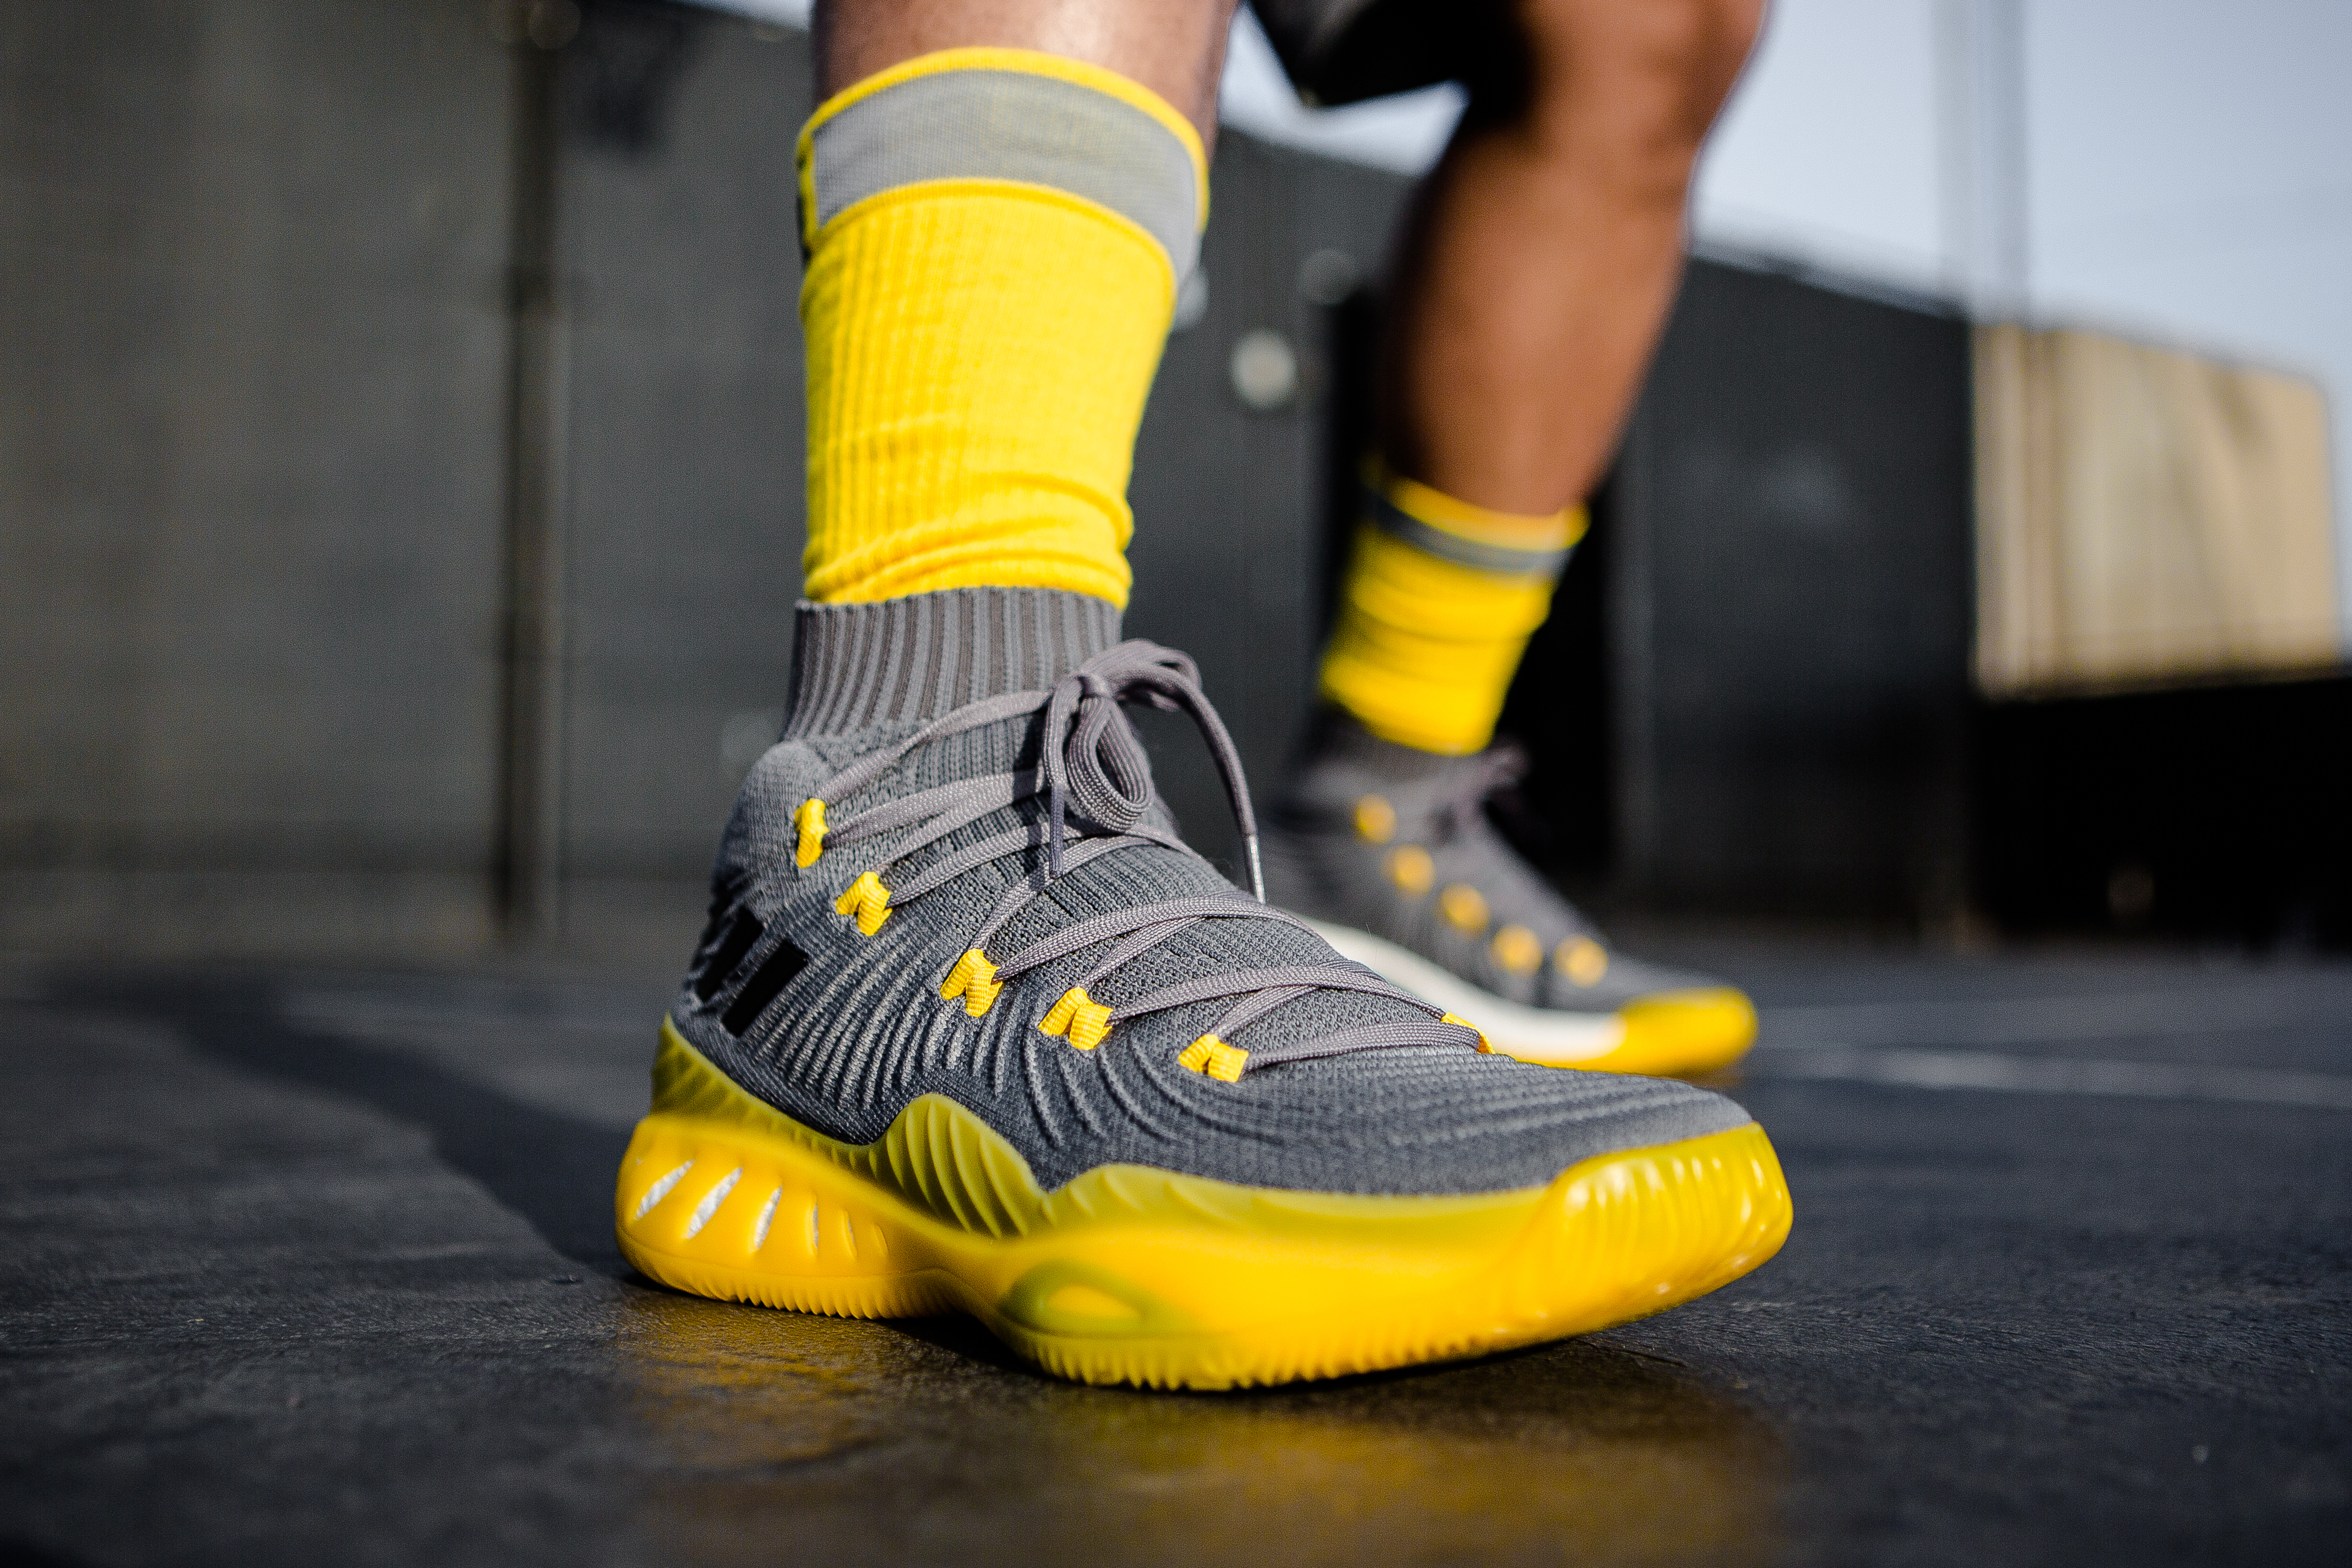 In addition to the functionality, the design is clean and, unlike a lot of basketball  shoes, isn't comically hokey. Previous Crazy Explosive iterations look ...